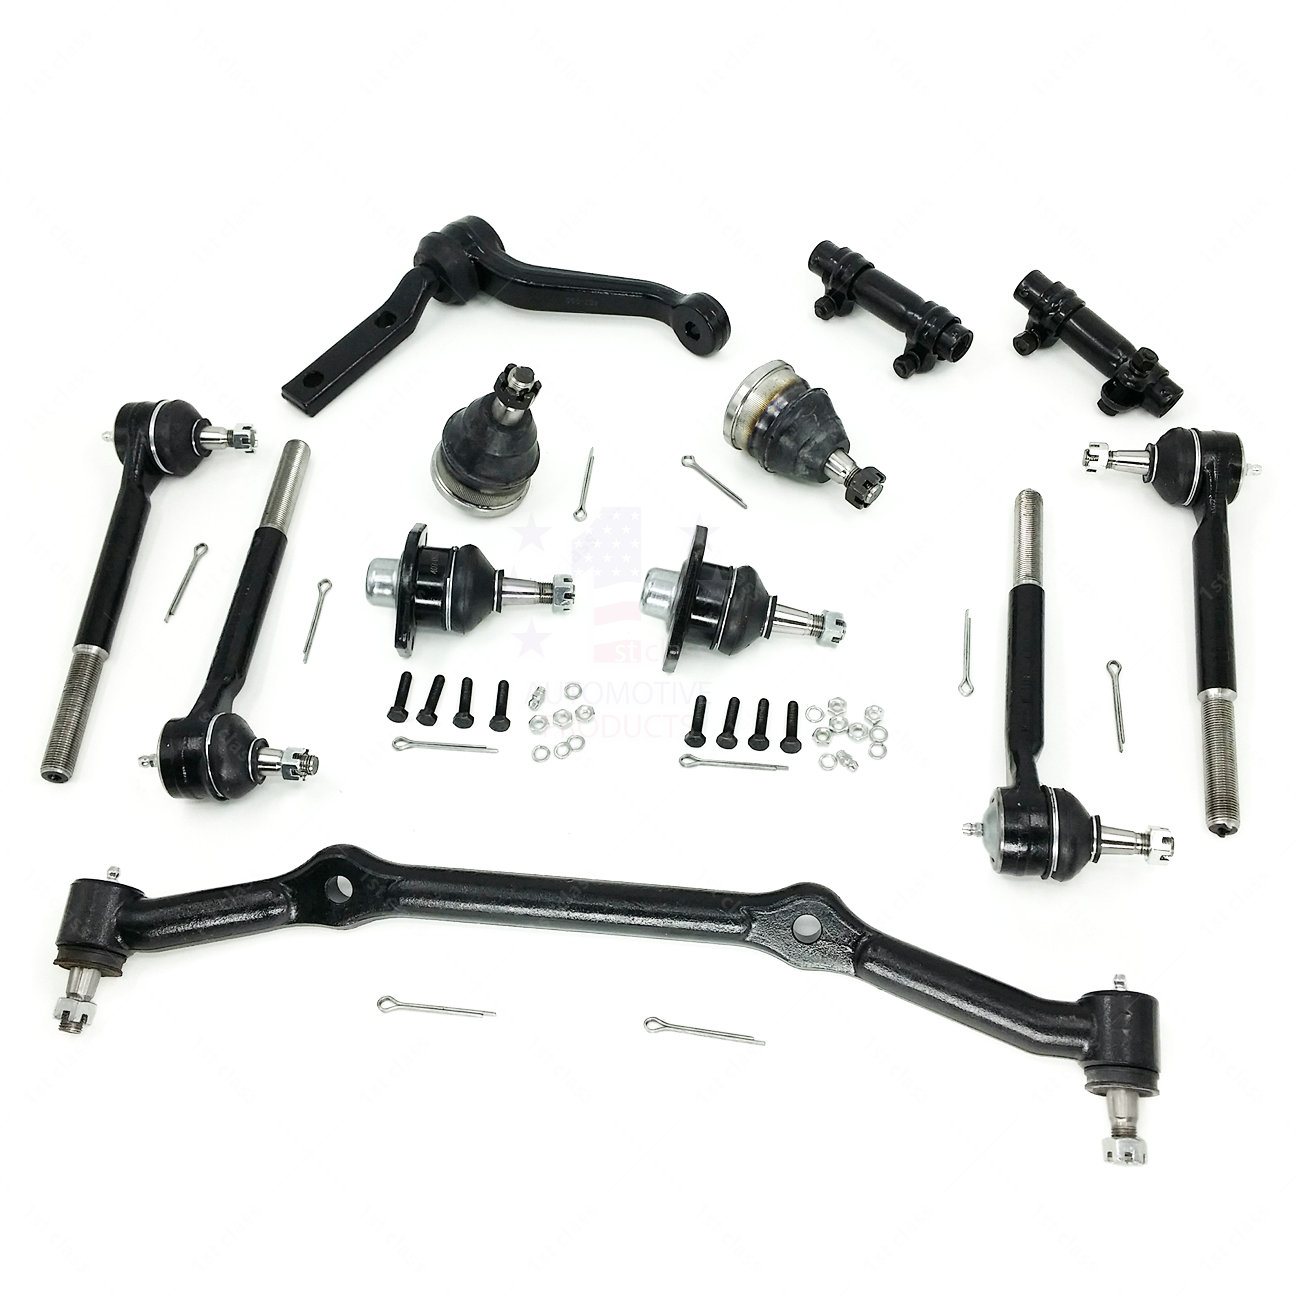 New 12pcs Suspension Kit For 2wd Chevy S10 Blazer Gmc